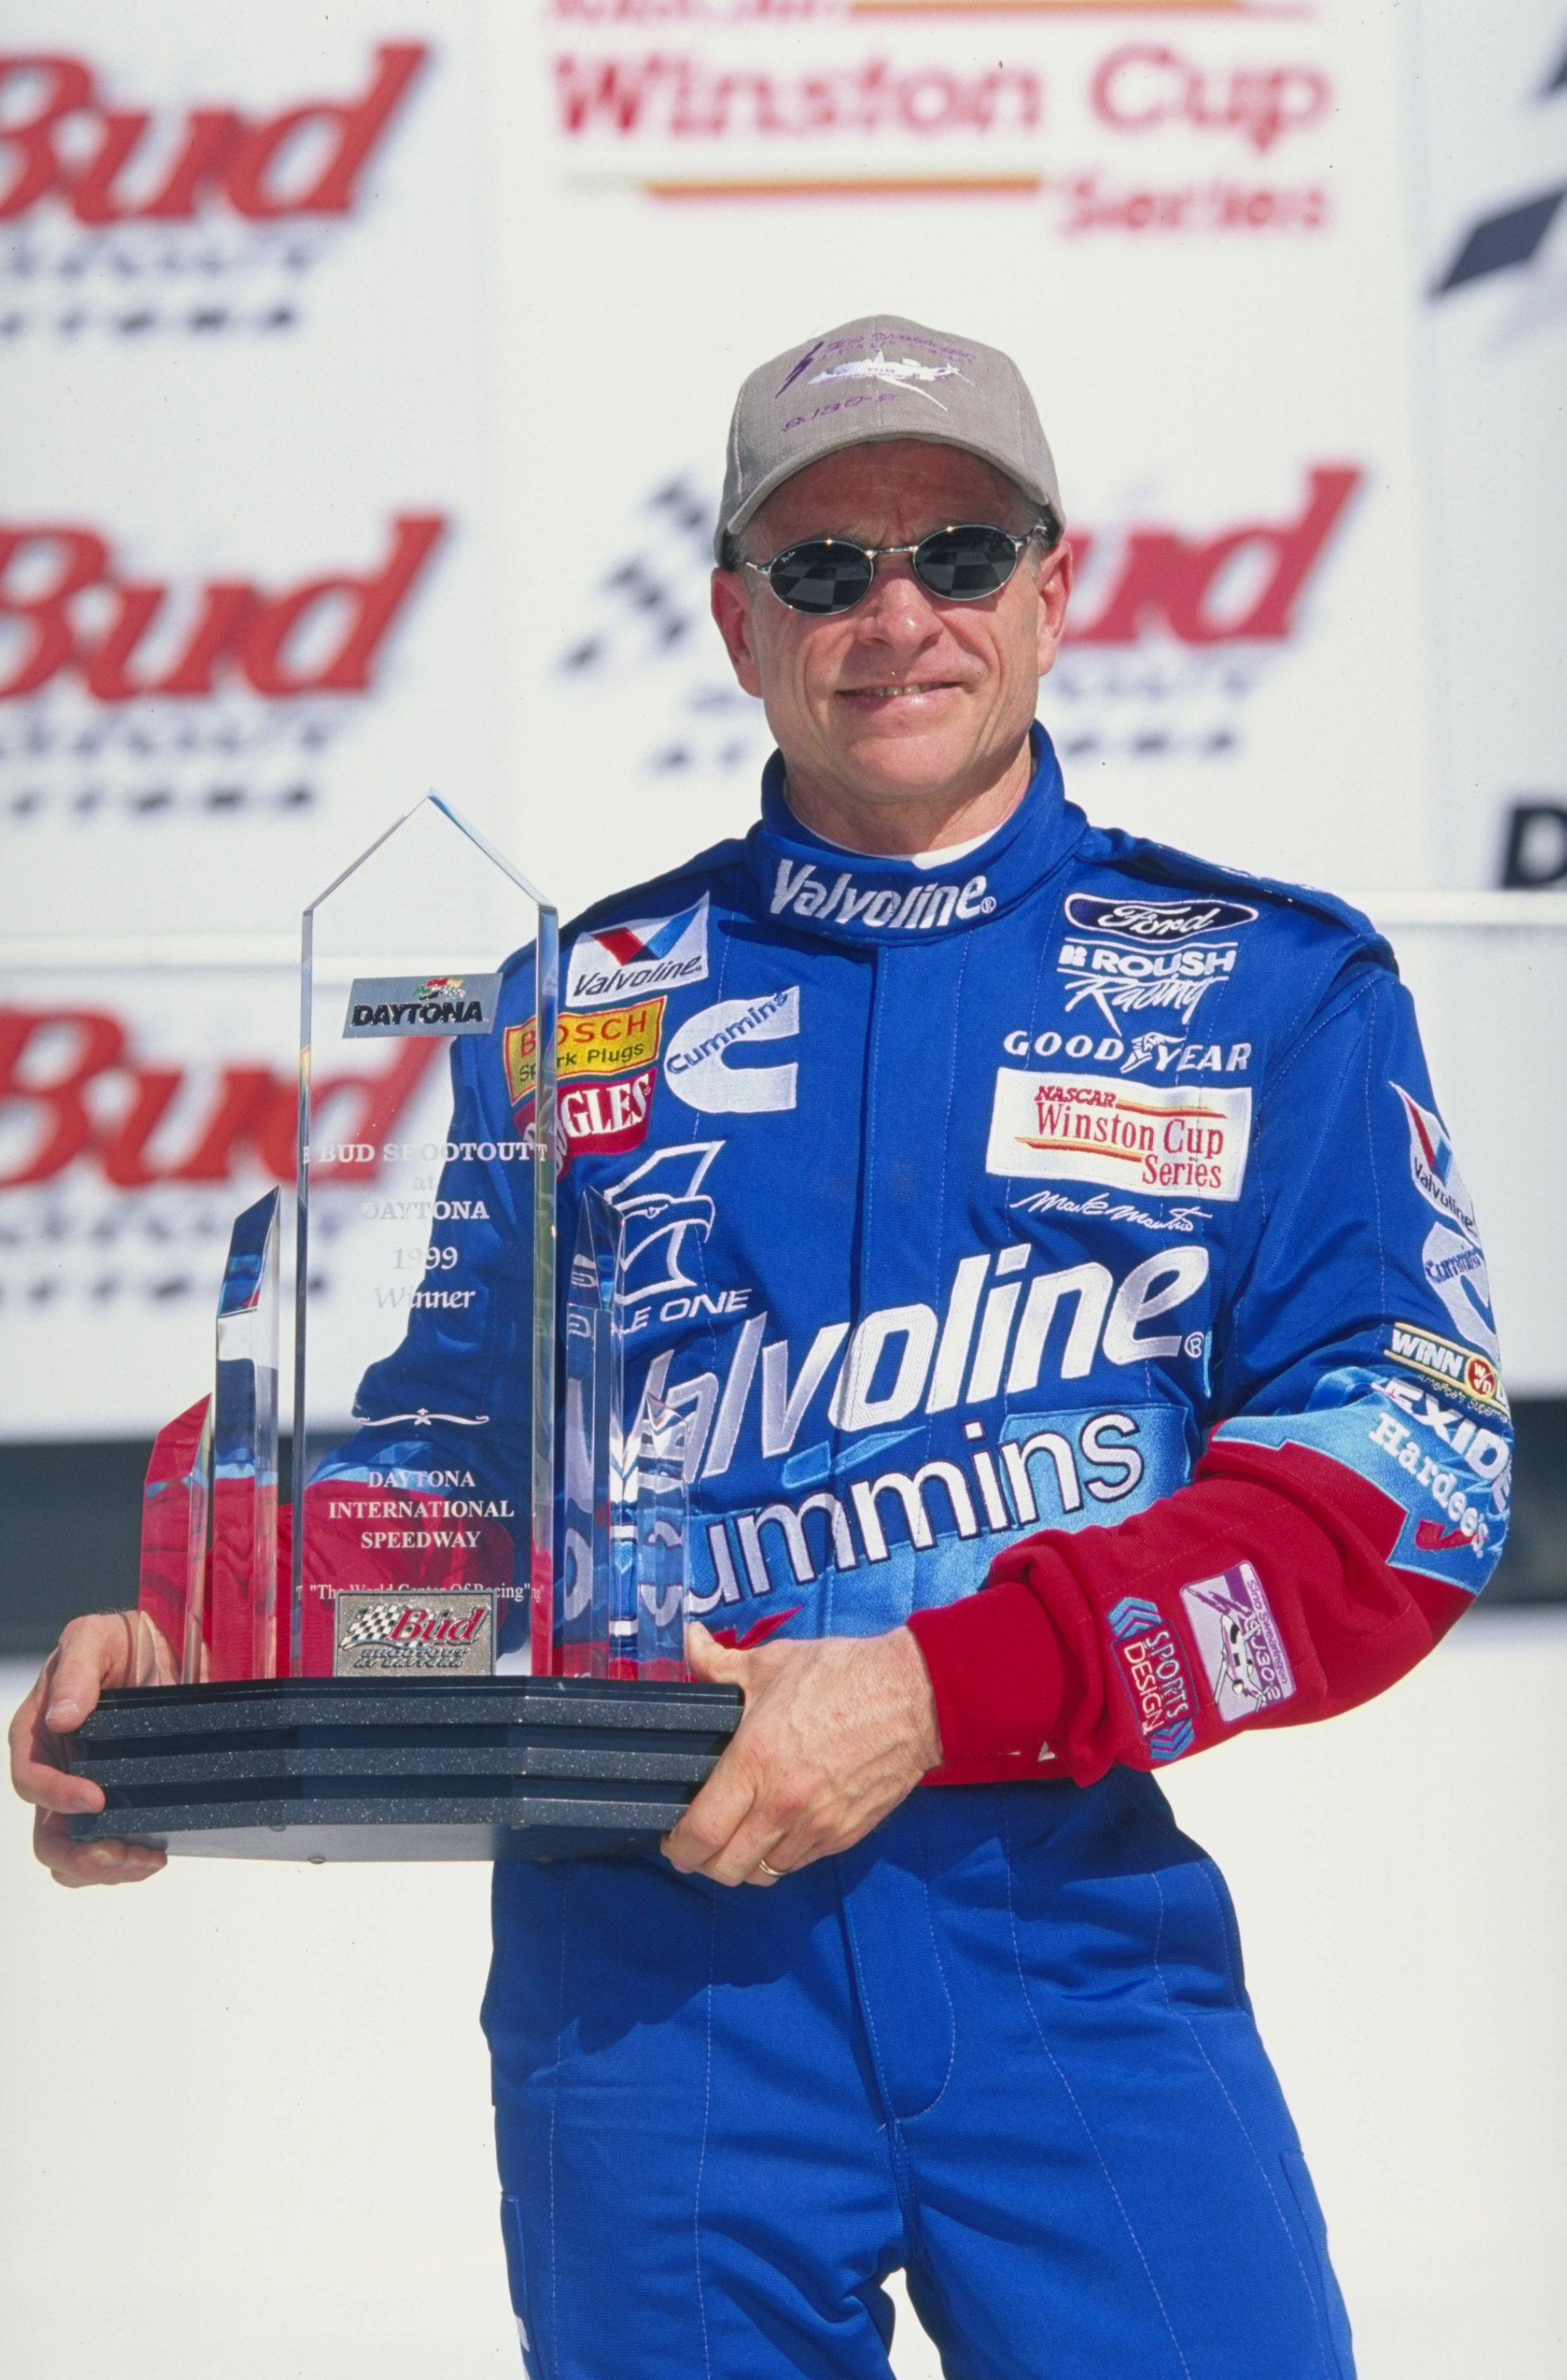 Mark Martin has one Bud Shootout win in 1999.